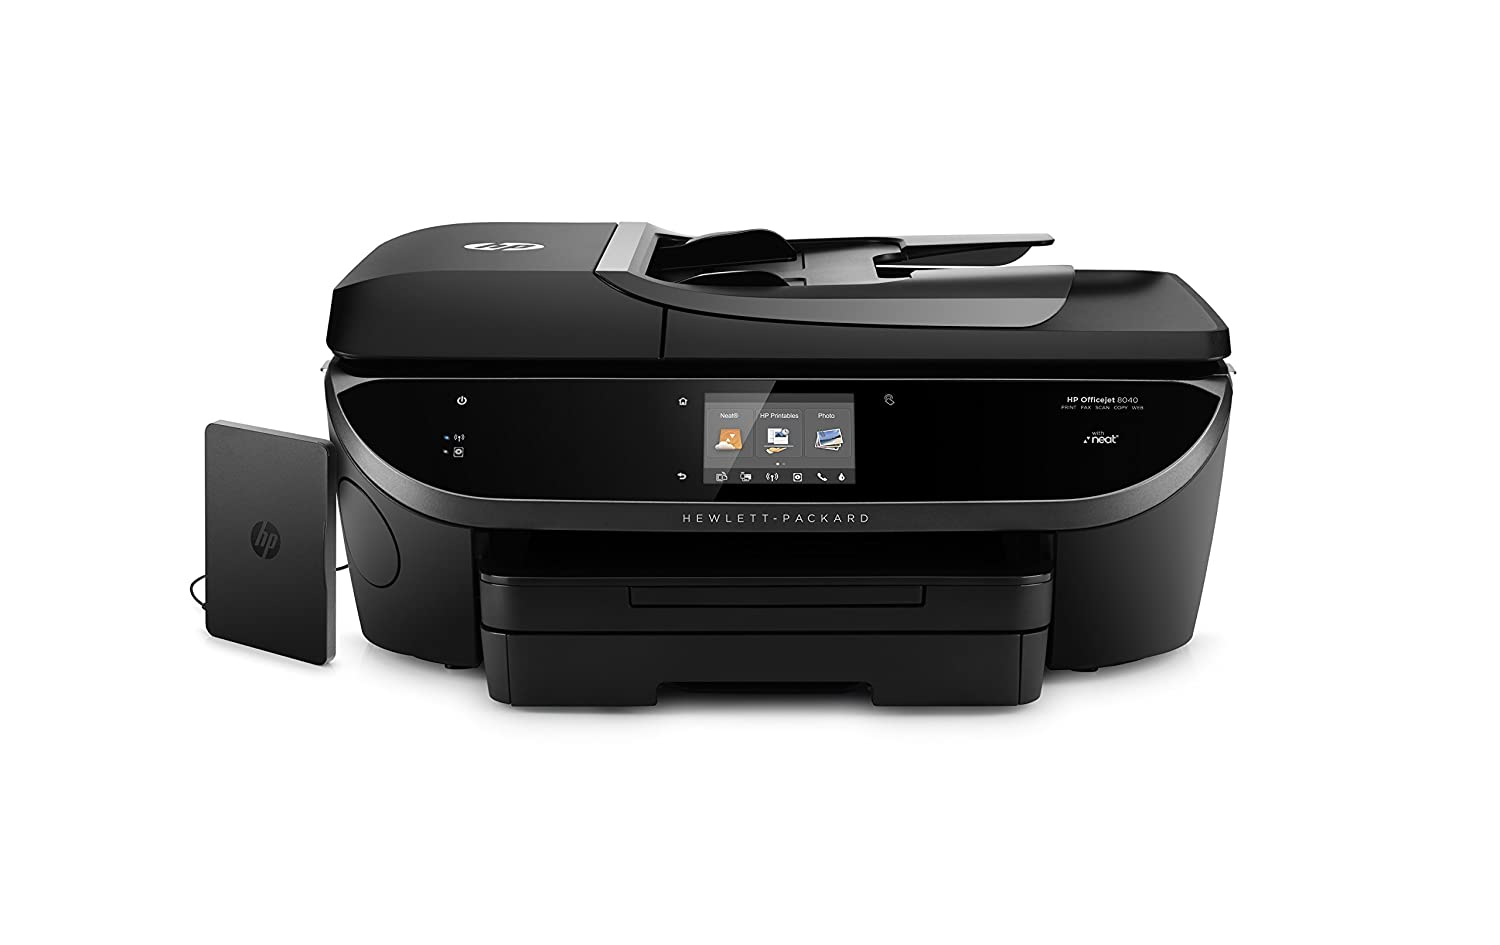 hp officejet 8040 wireless all in one photo printer instant ink ready f5a16a. Black Bedroom Furniture Sets. Home Design Ideas